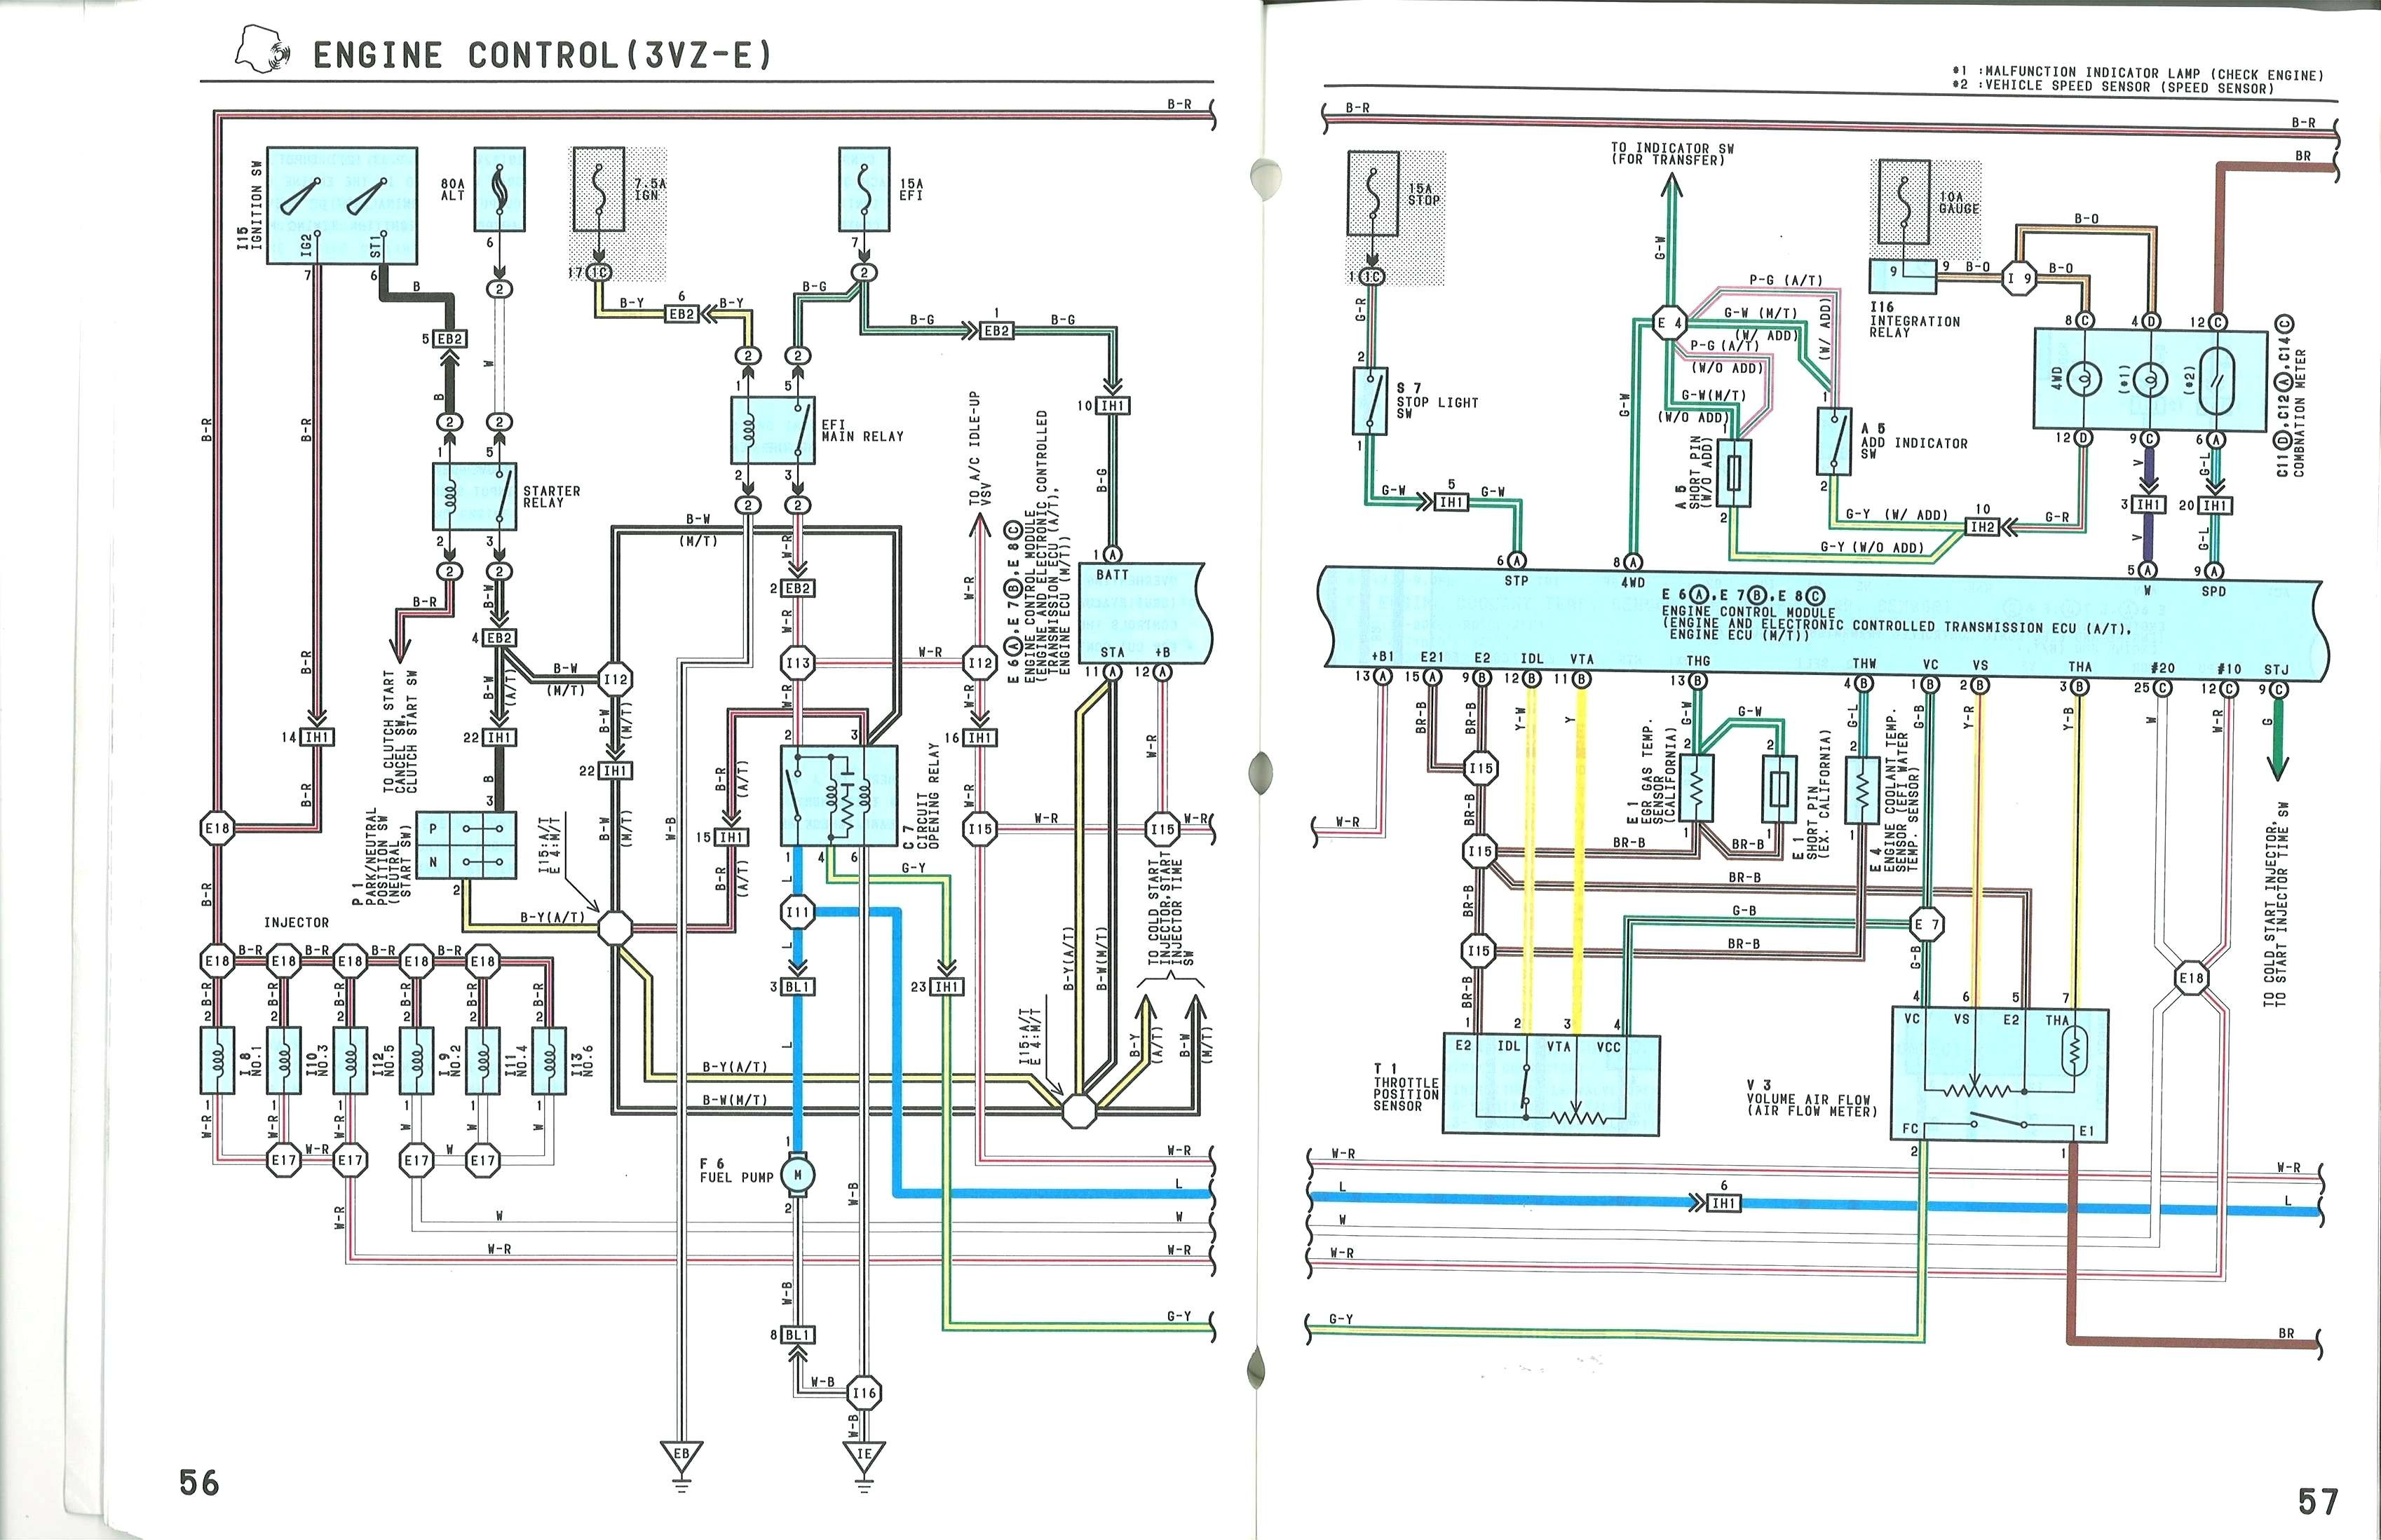 88 Toyota 22re Engine Diagram - Wiring Diagram Function